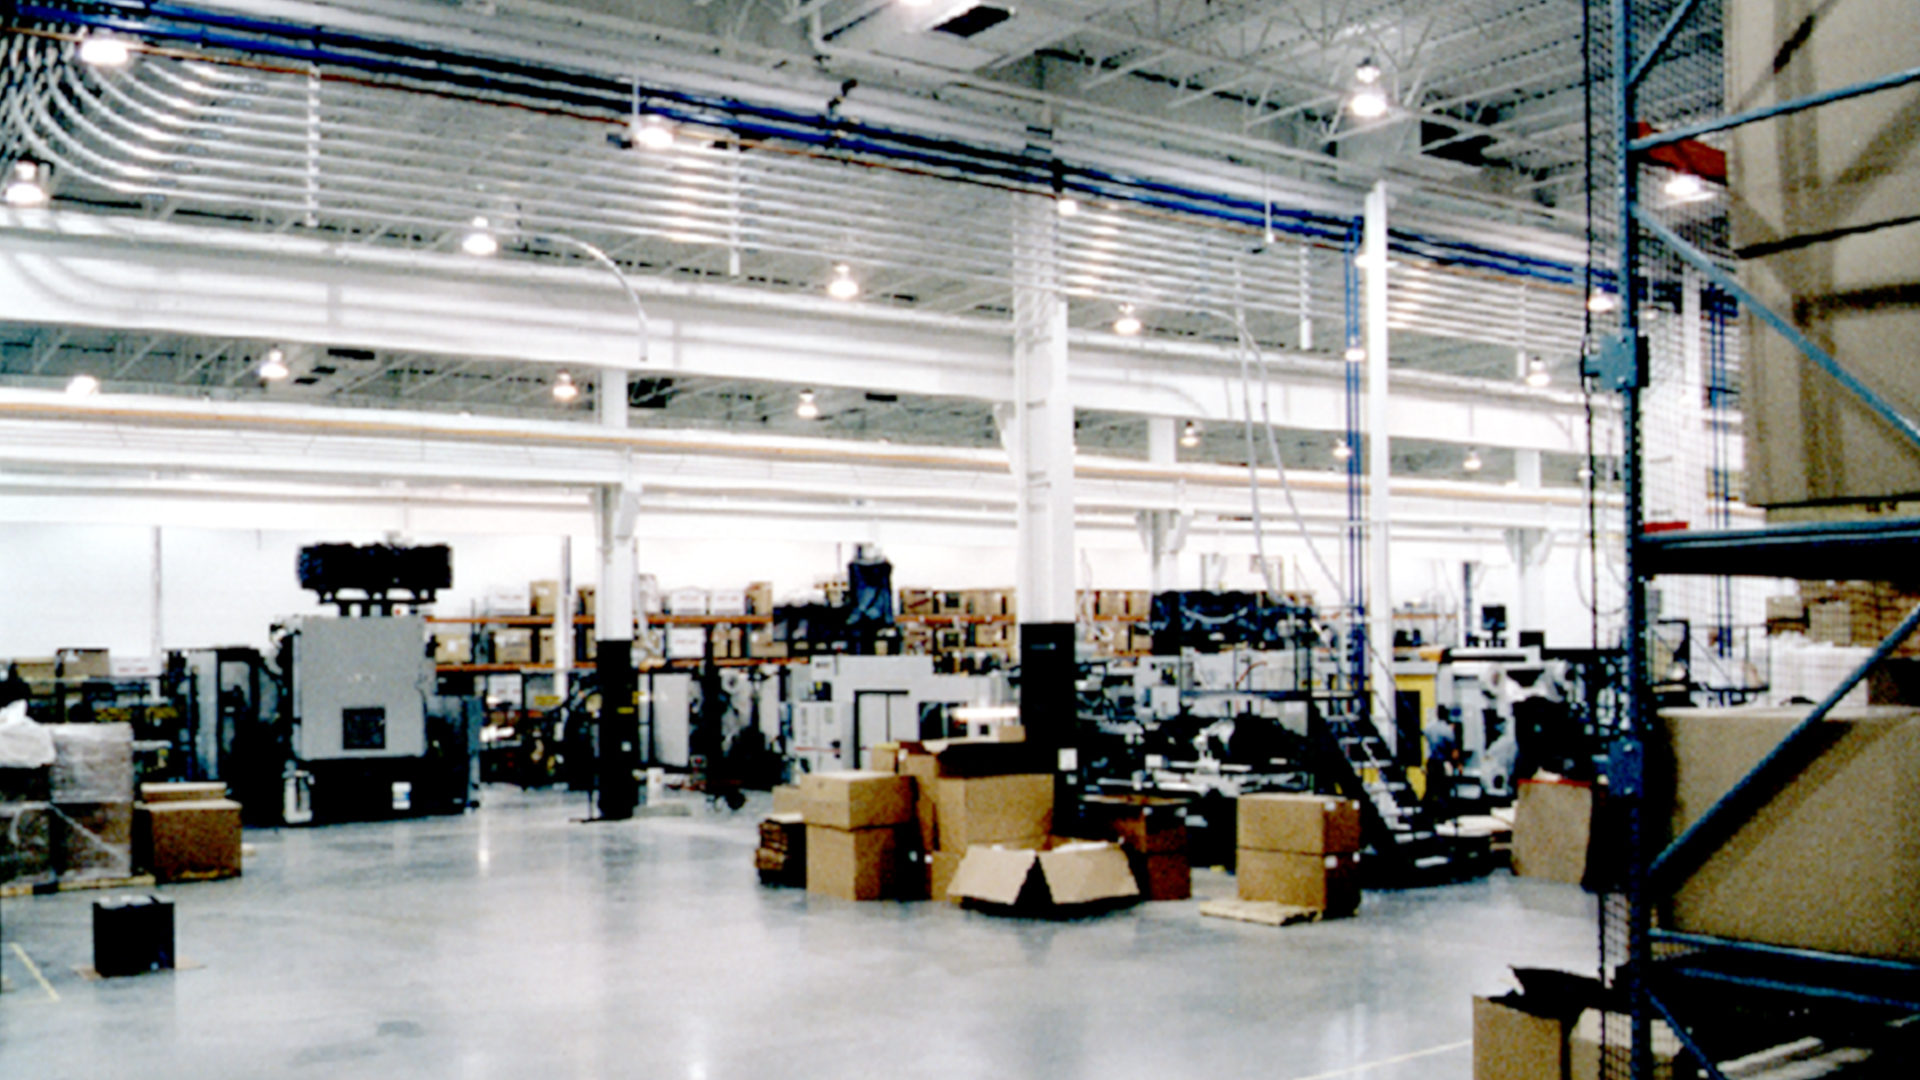 Polaris Industries Roseau MN Manufacturing Facility Interior Warehouse